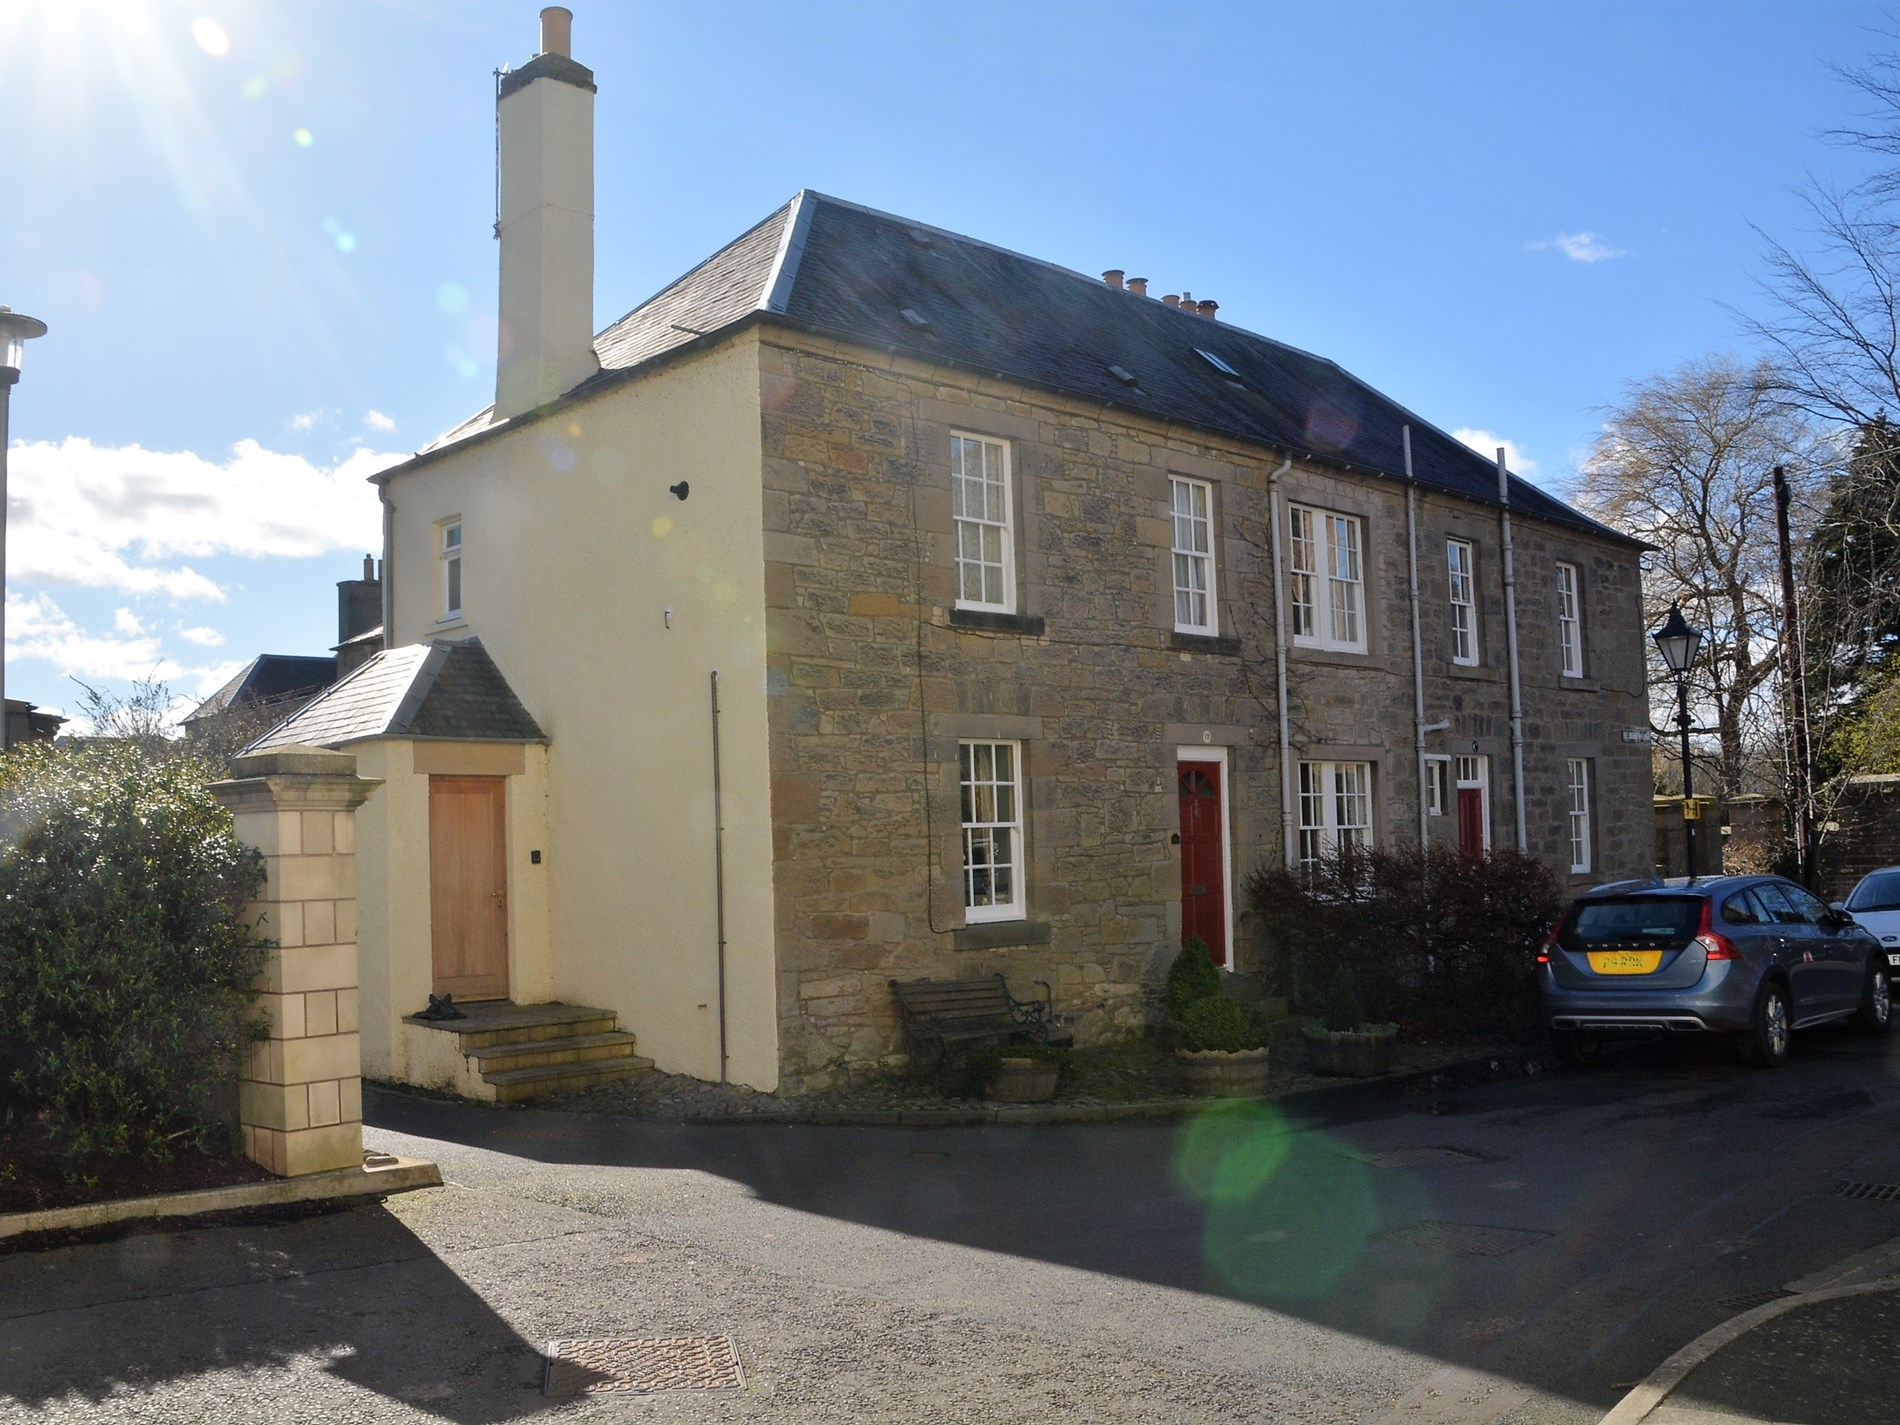 2 Bedroom Cottage in Kelso, Scottish Borders